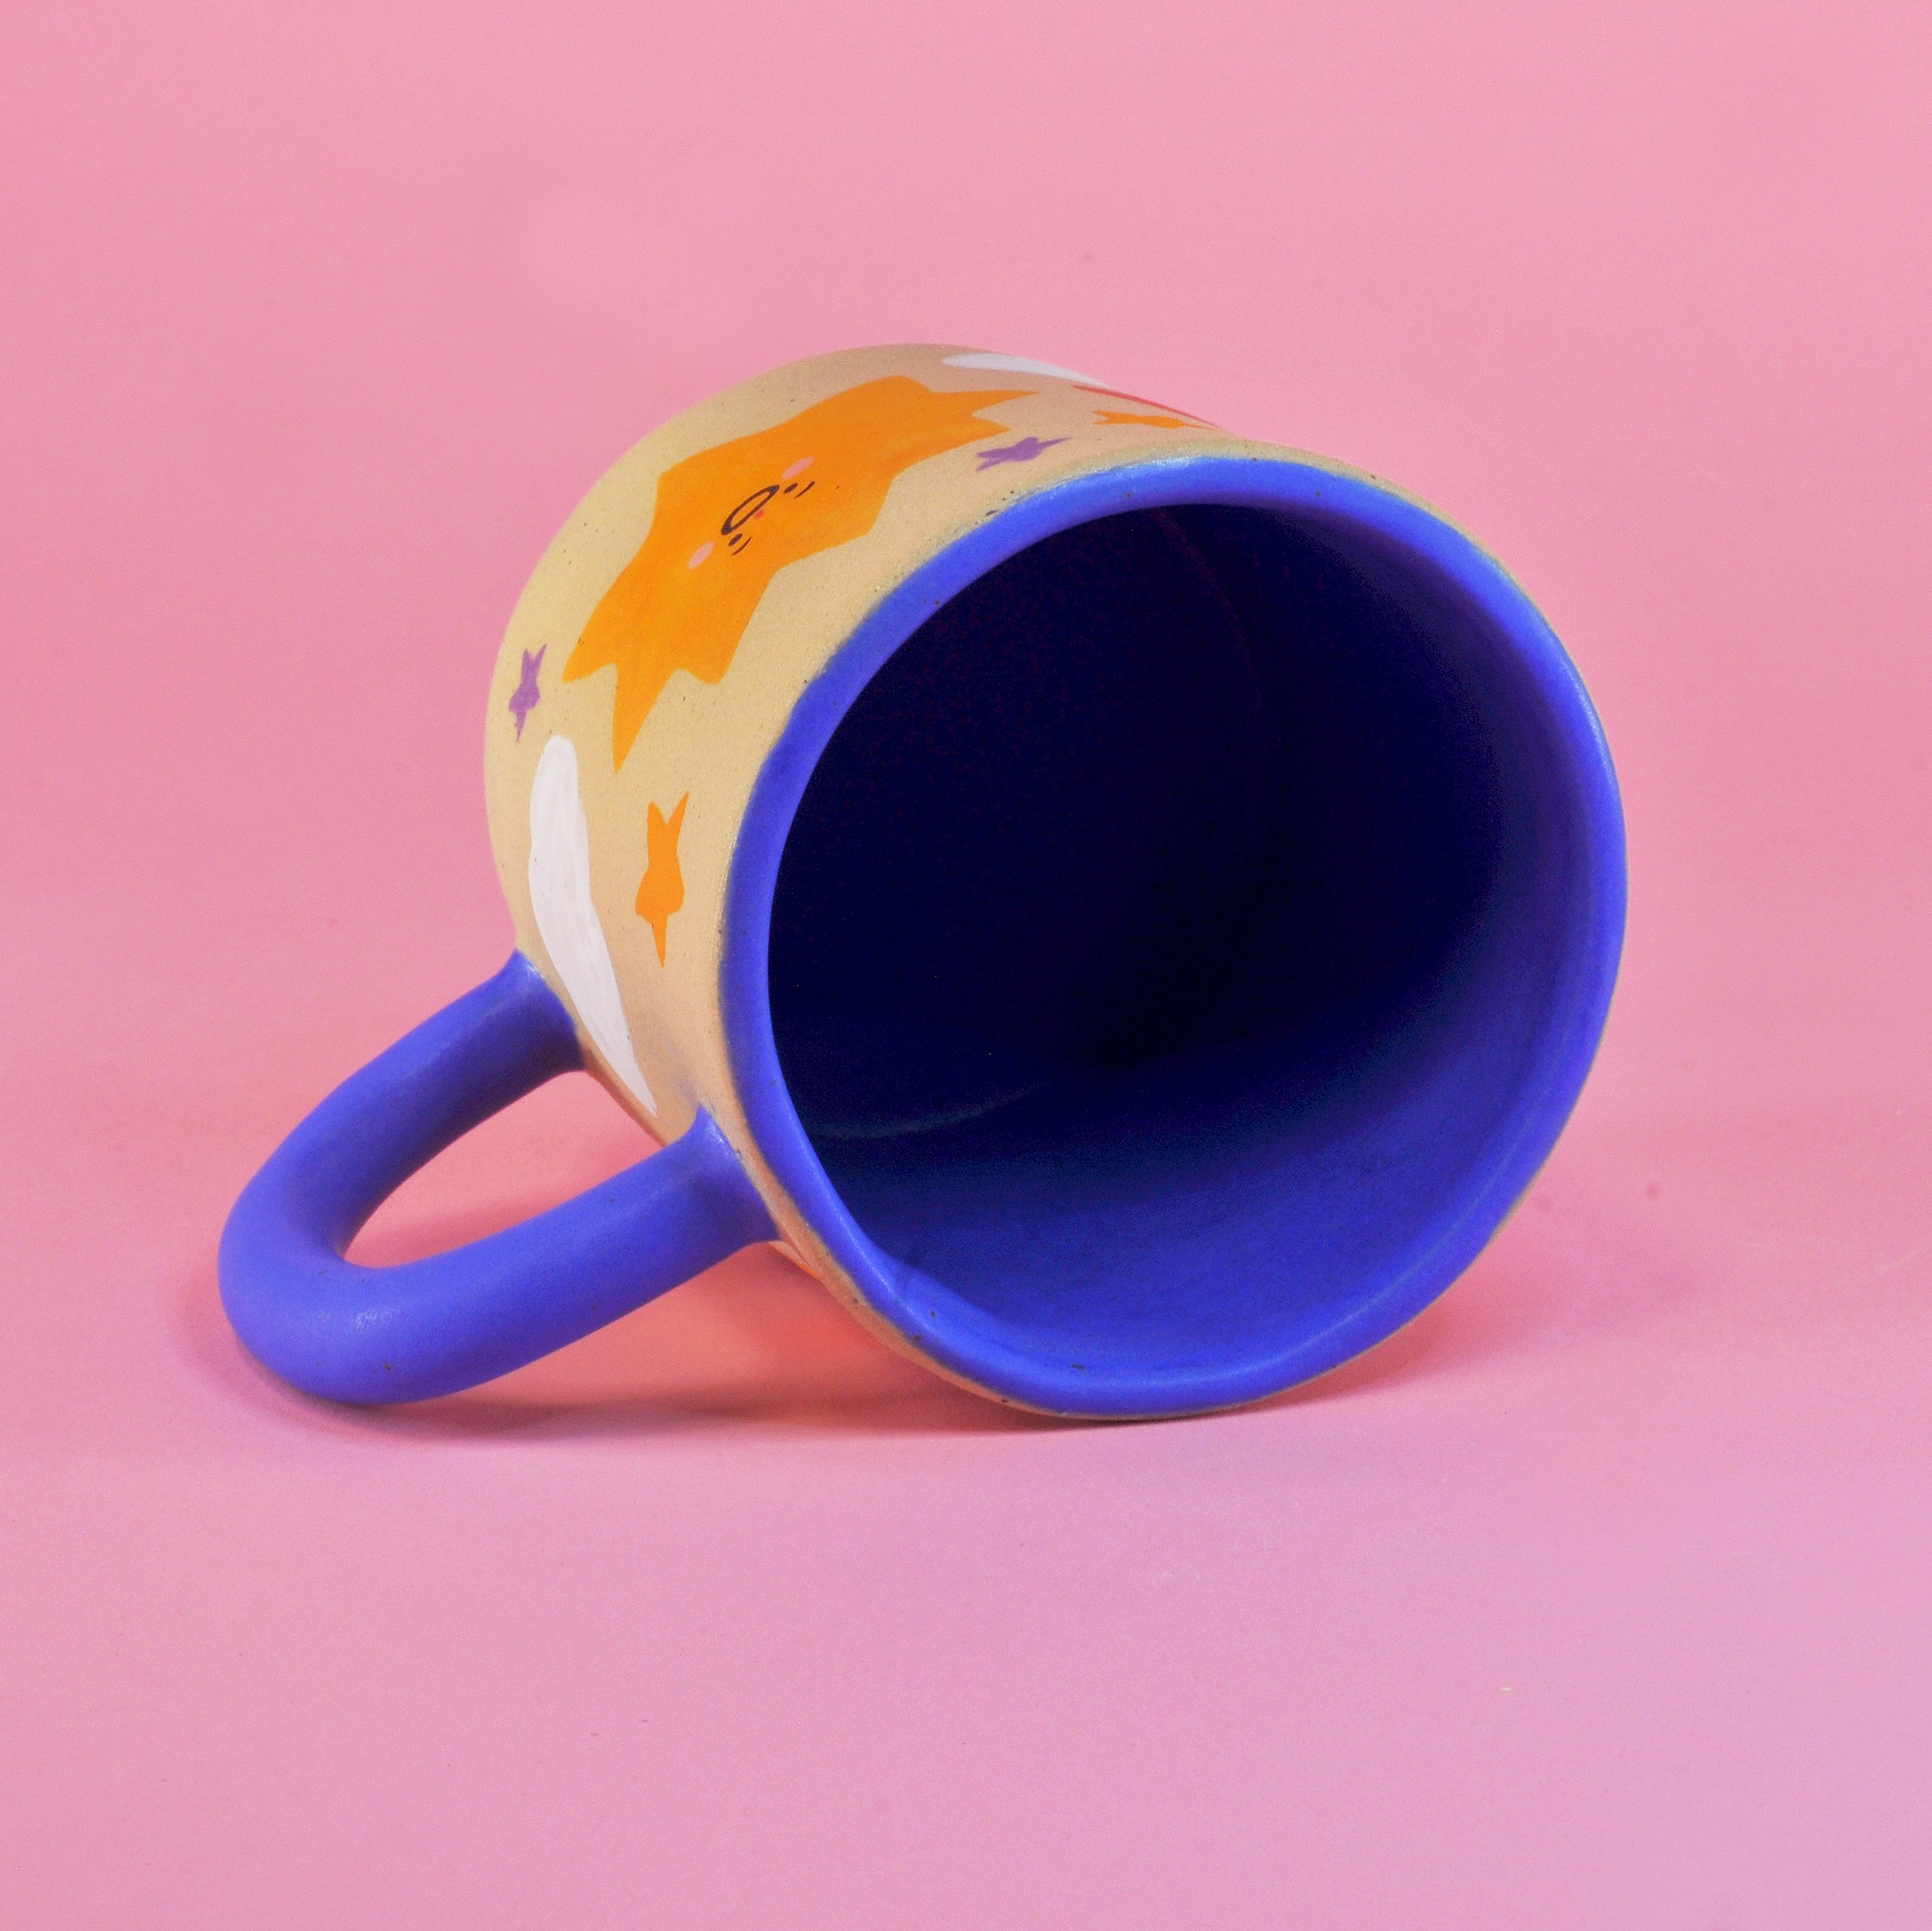 Big Moon and Sun Mug